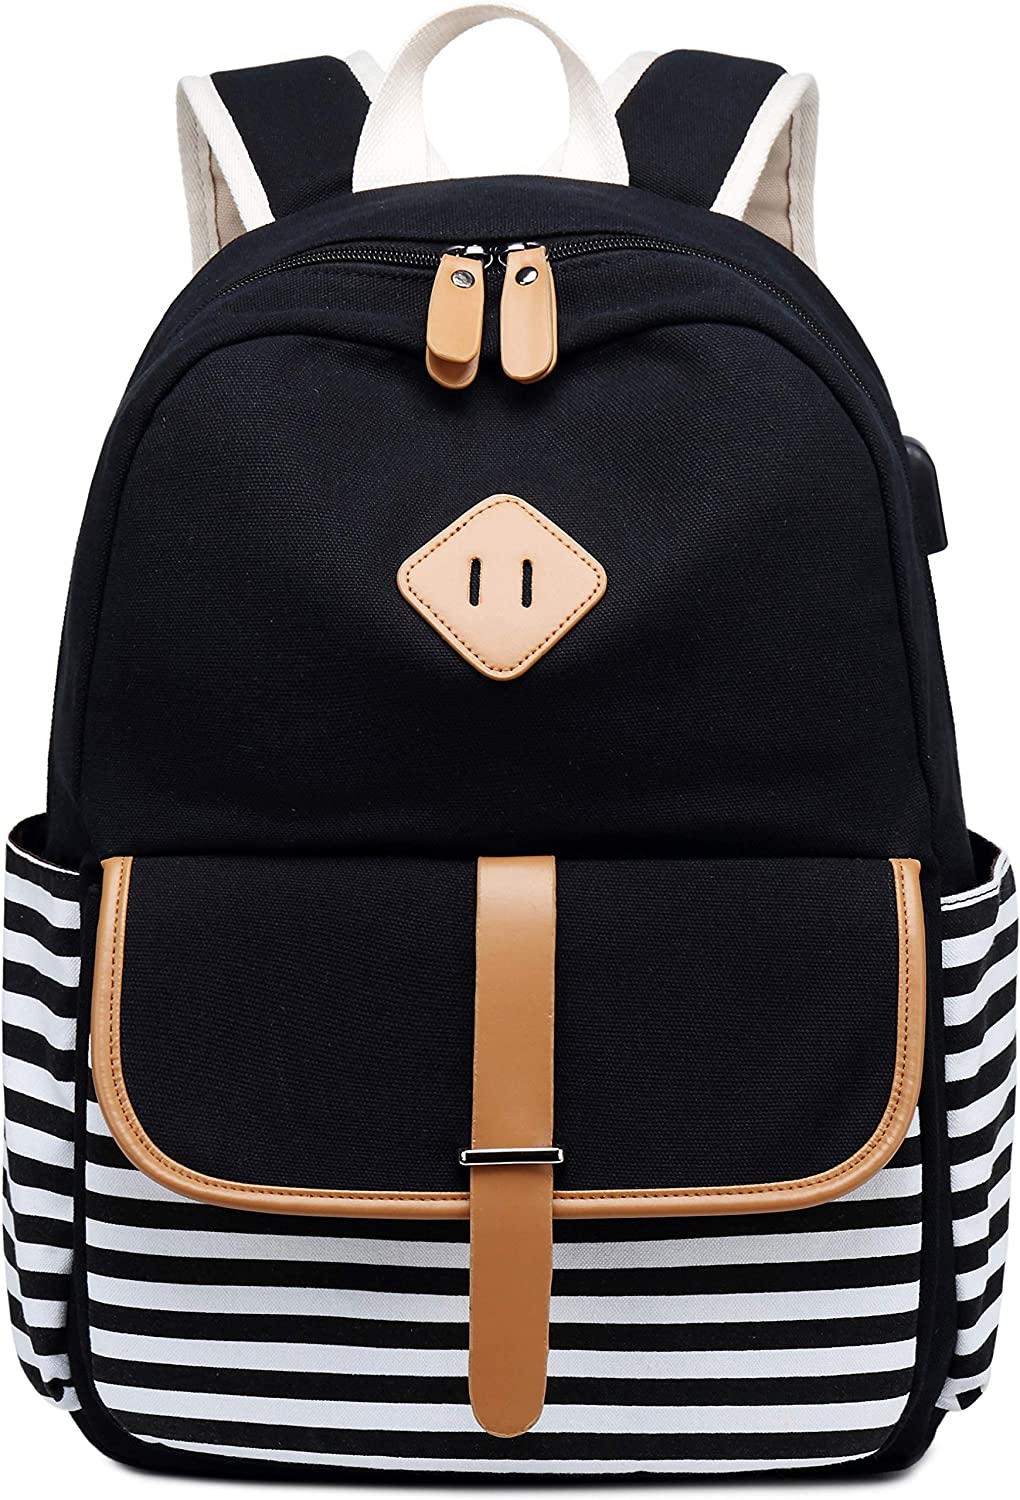 Canvas Travel Laptop Backpacks Womens College Backpack School Bag 15 inch USB Daypack Outdoor With Trolley Case Slot